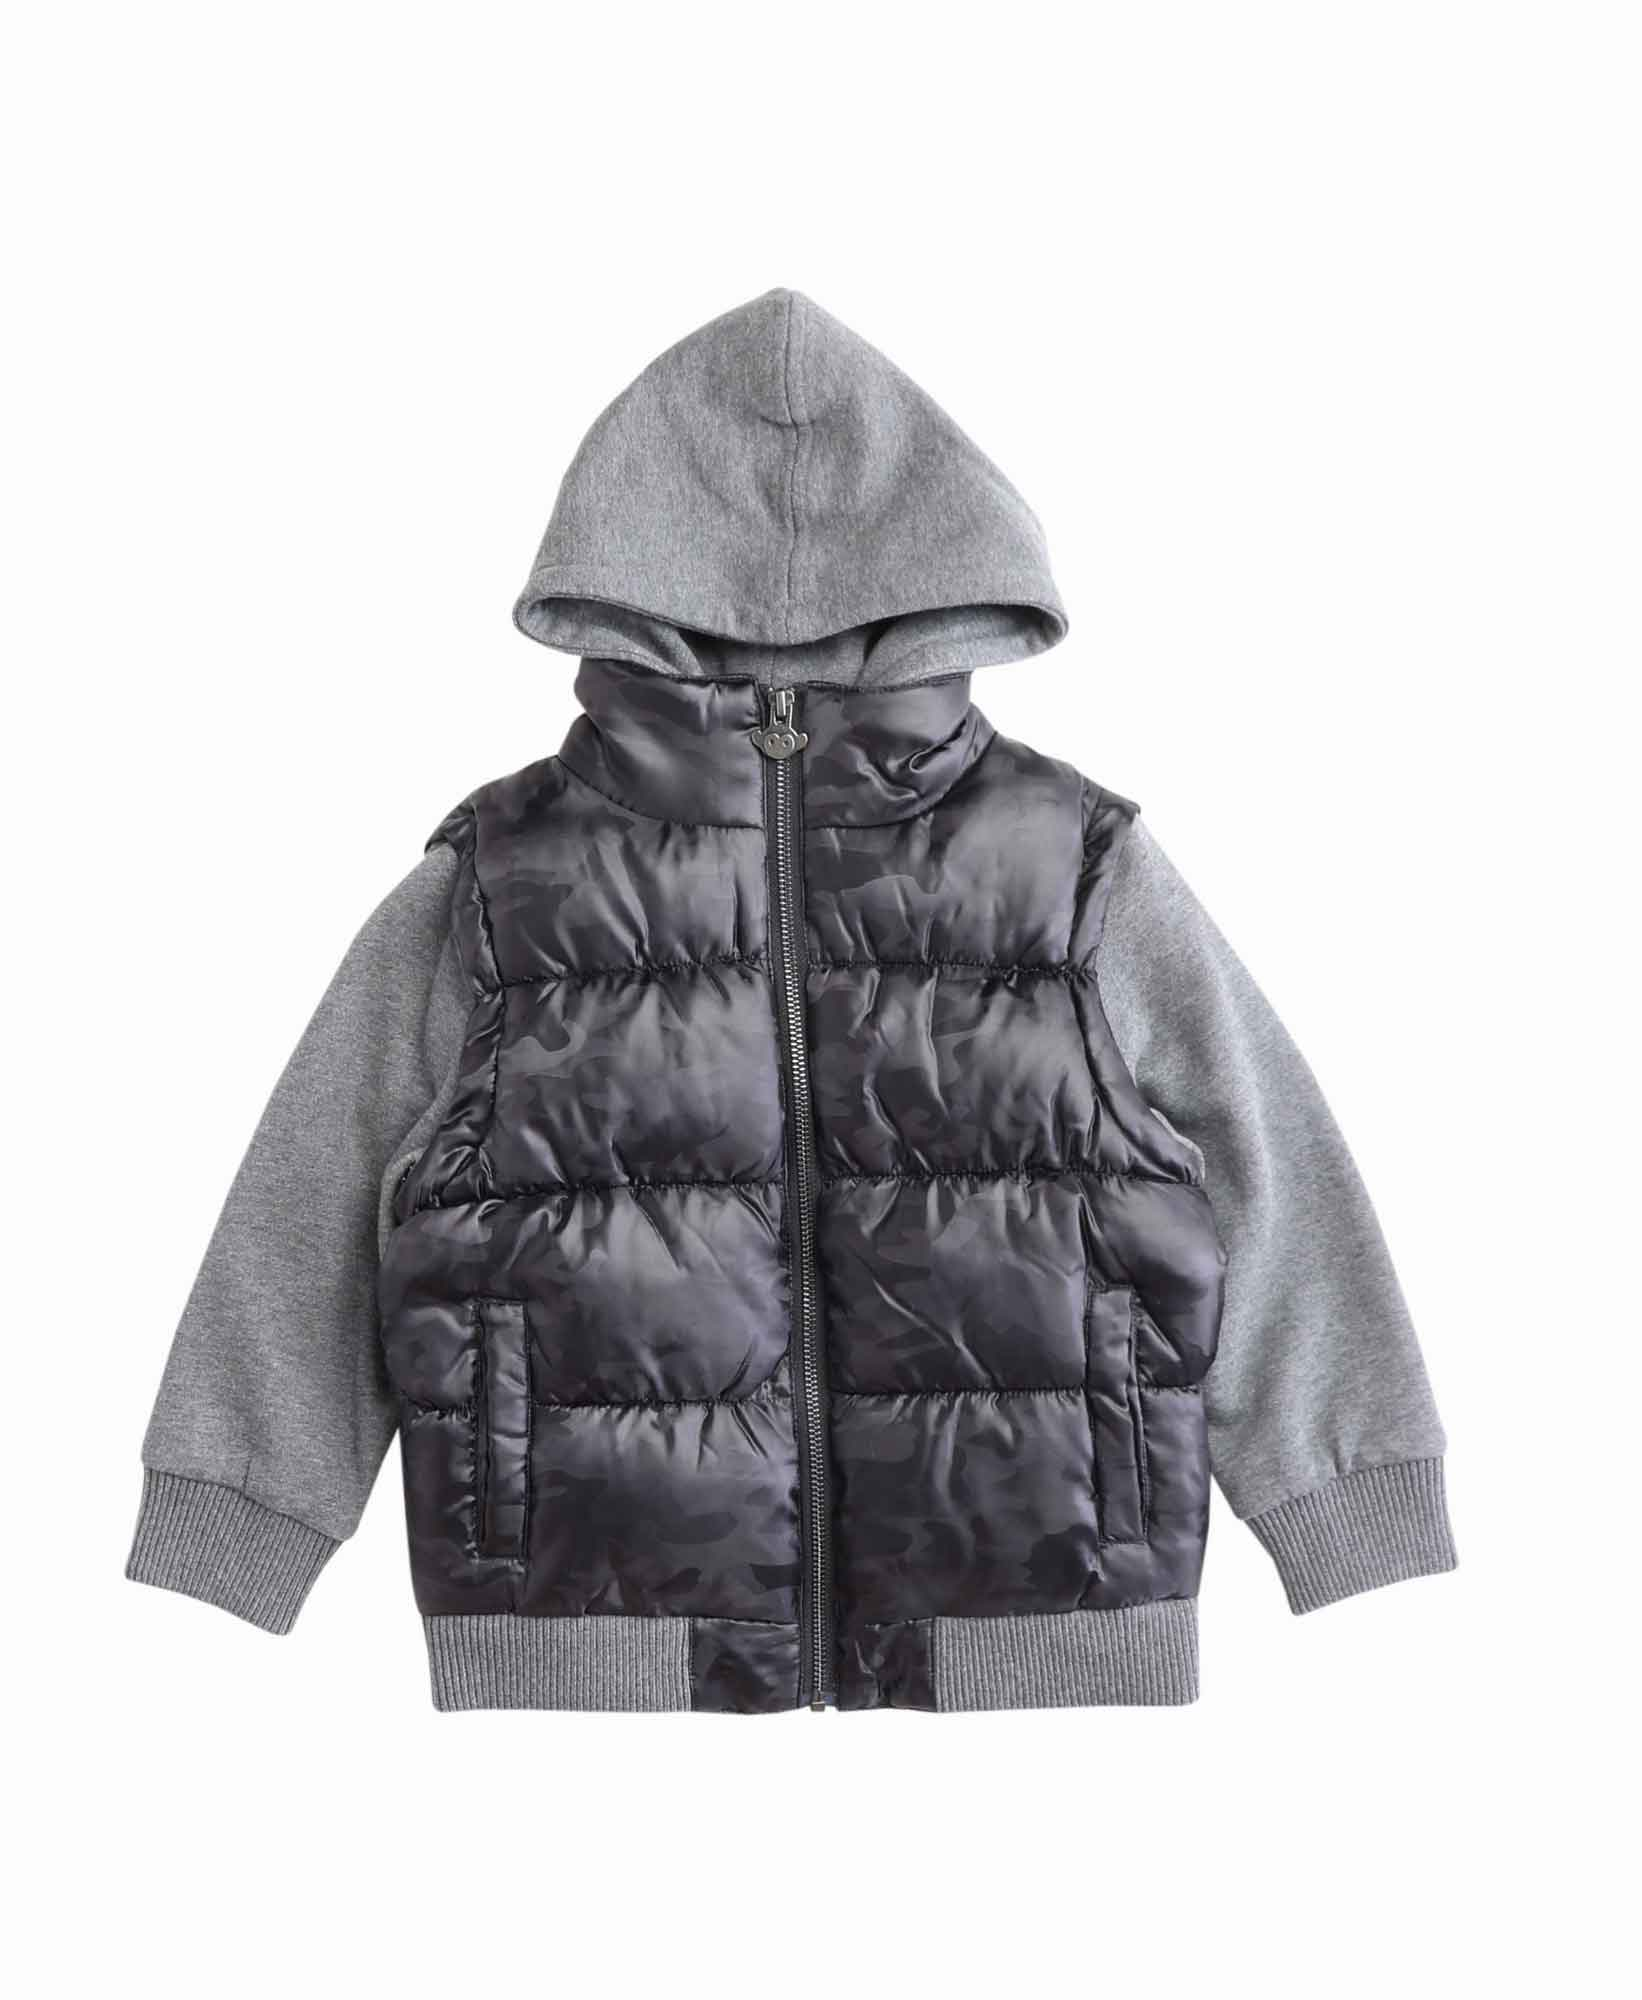 Appaman Turnstyle Puffer Jacket